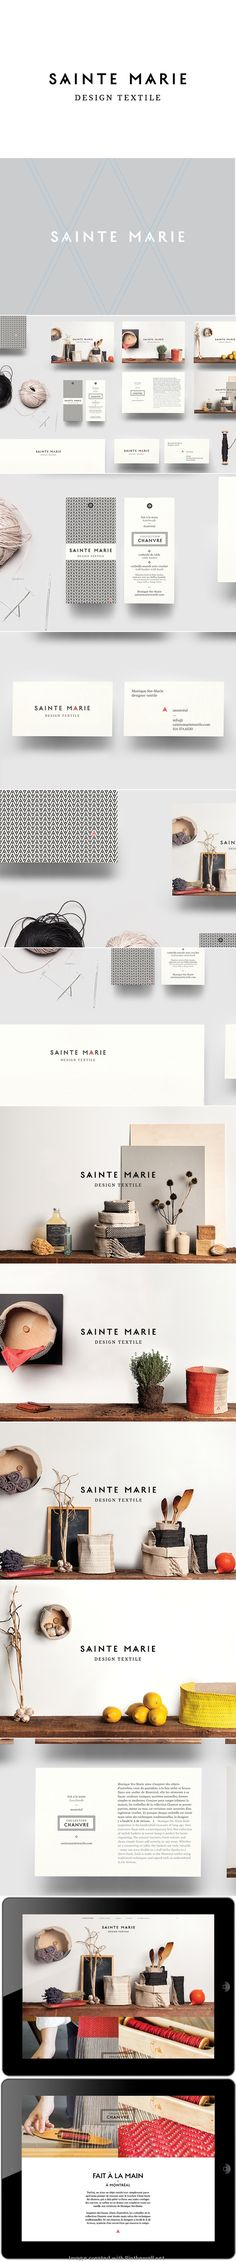 text-only logo :: Sainte marie corporate identity branding graphic textile design business card website label Corporate Design, Brand Identity Design, Corporate Identity, Business Branding, Visual Identity, Business Card Design, Identity Branding, Brand Design, Graphic Design Agency